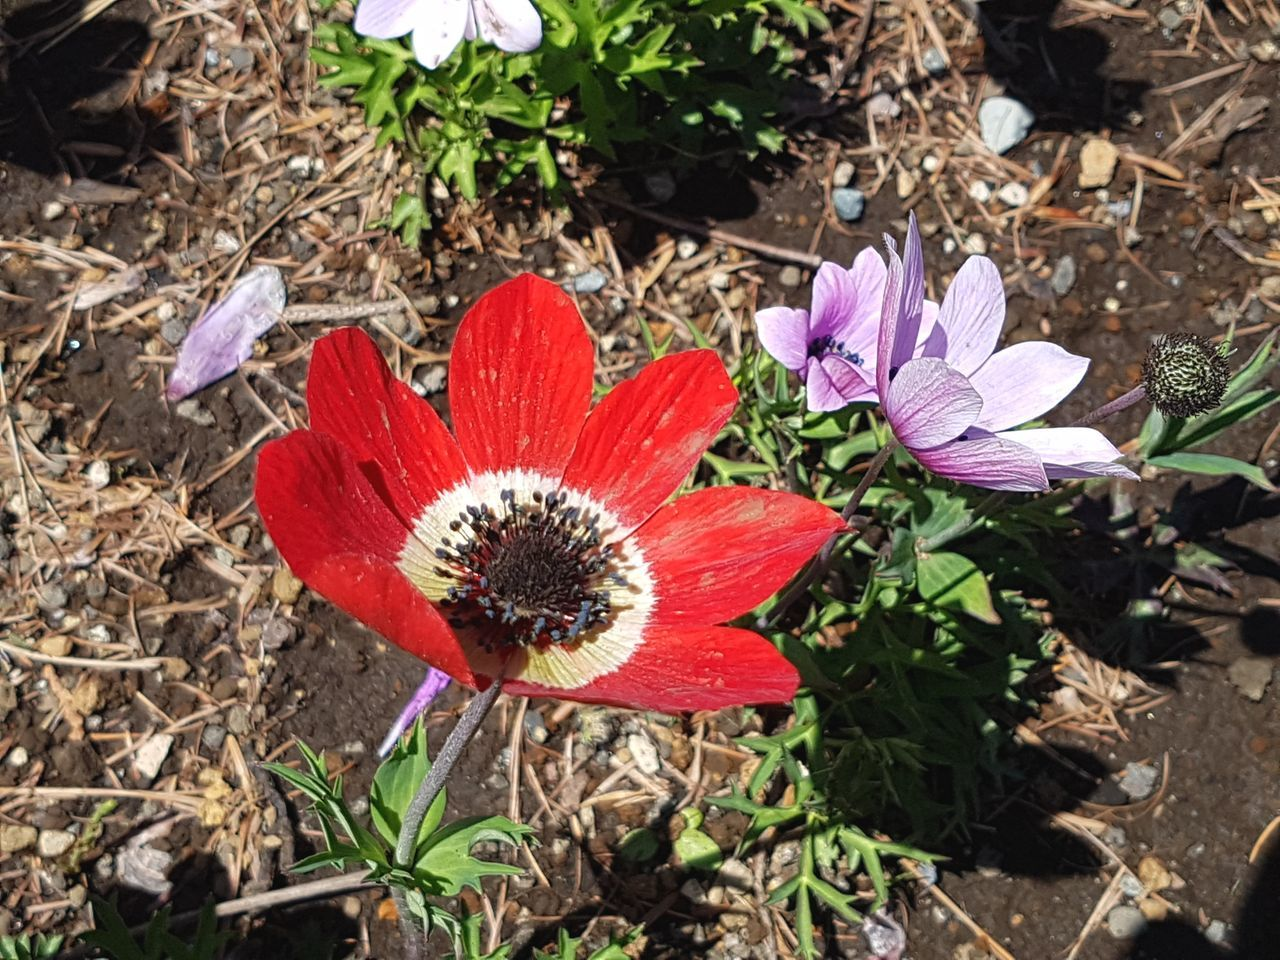 Flower Plant Nature Fragility Flower Head Beauty In Nature Growth Petal Red Outdoors Freshness Pollen Close-up Day No People Poppy Flowers Perennial